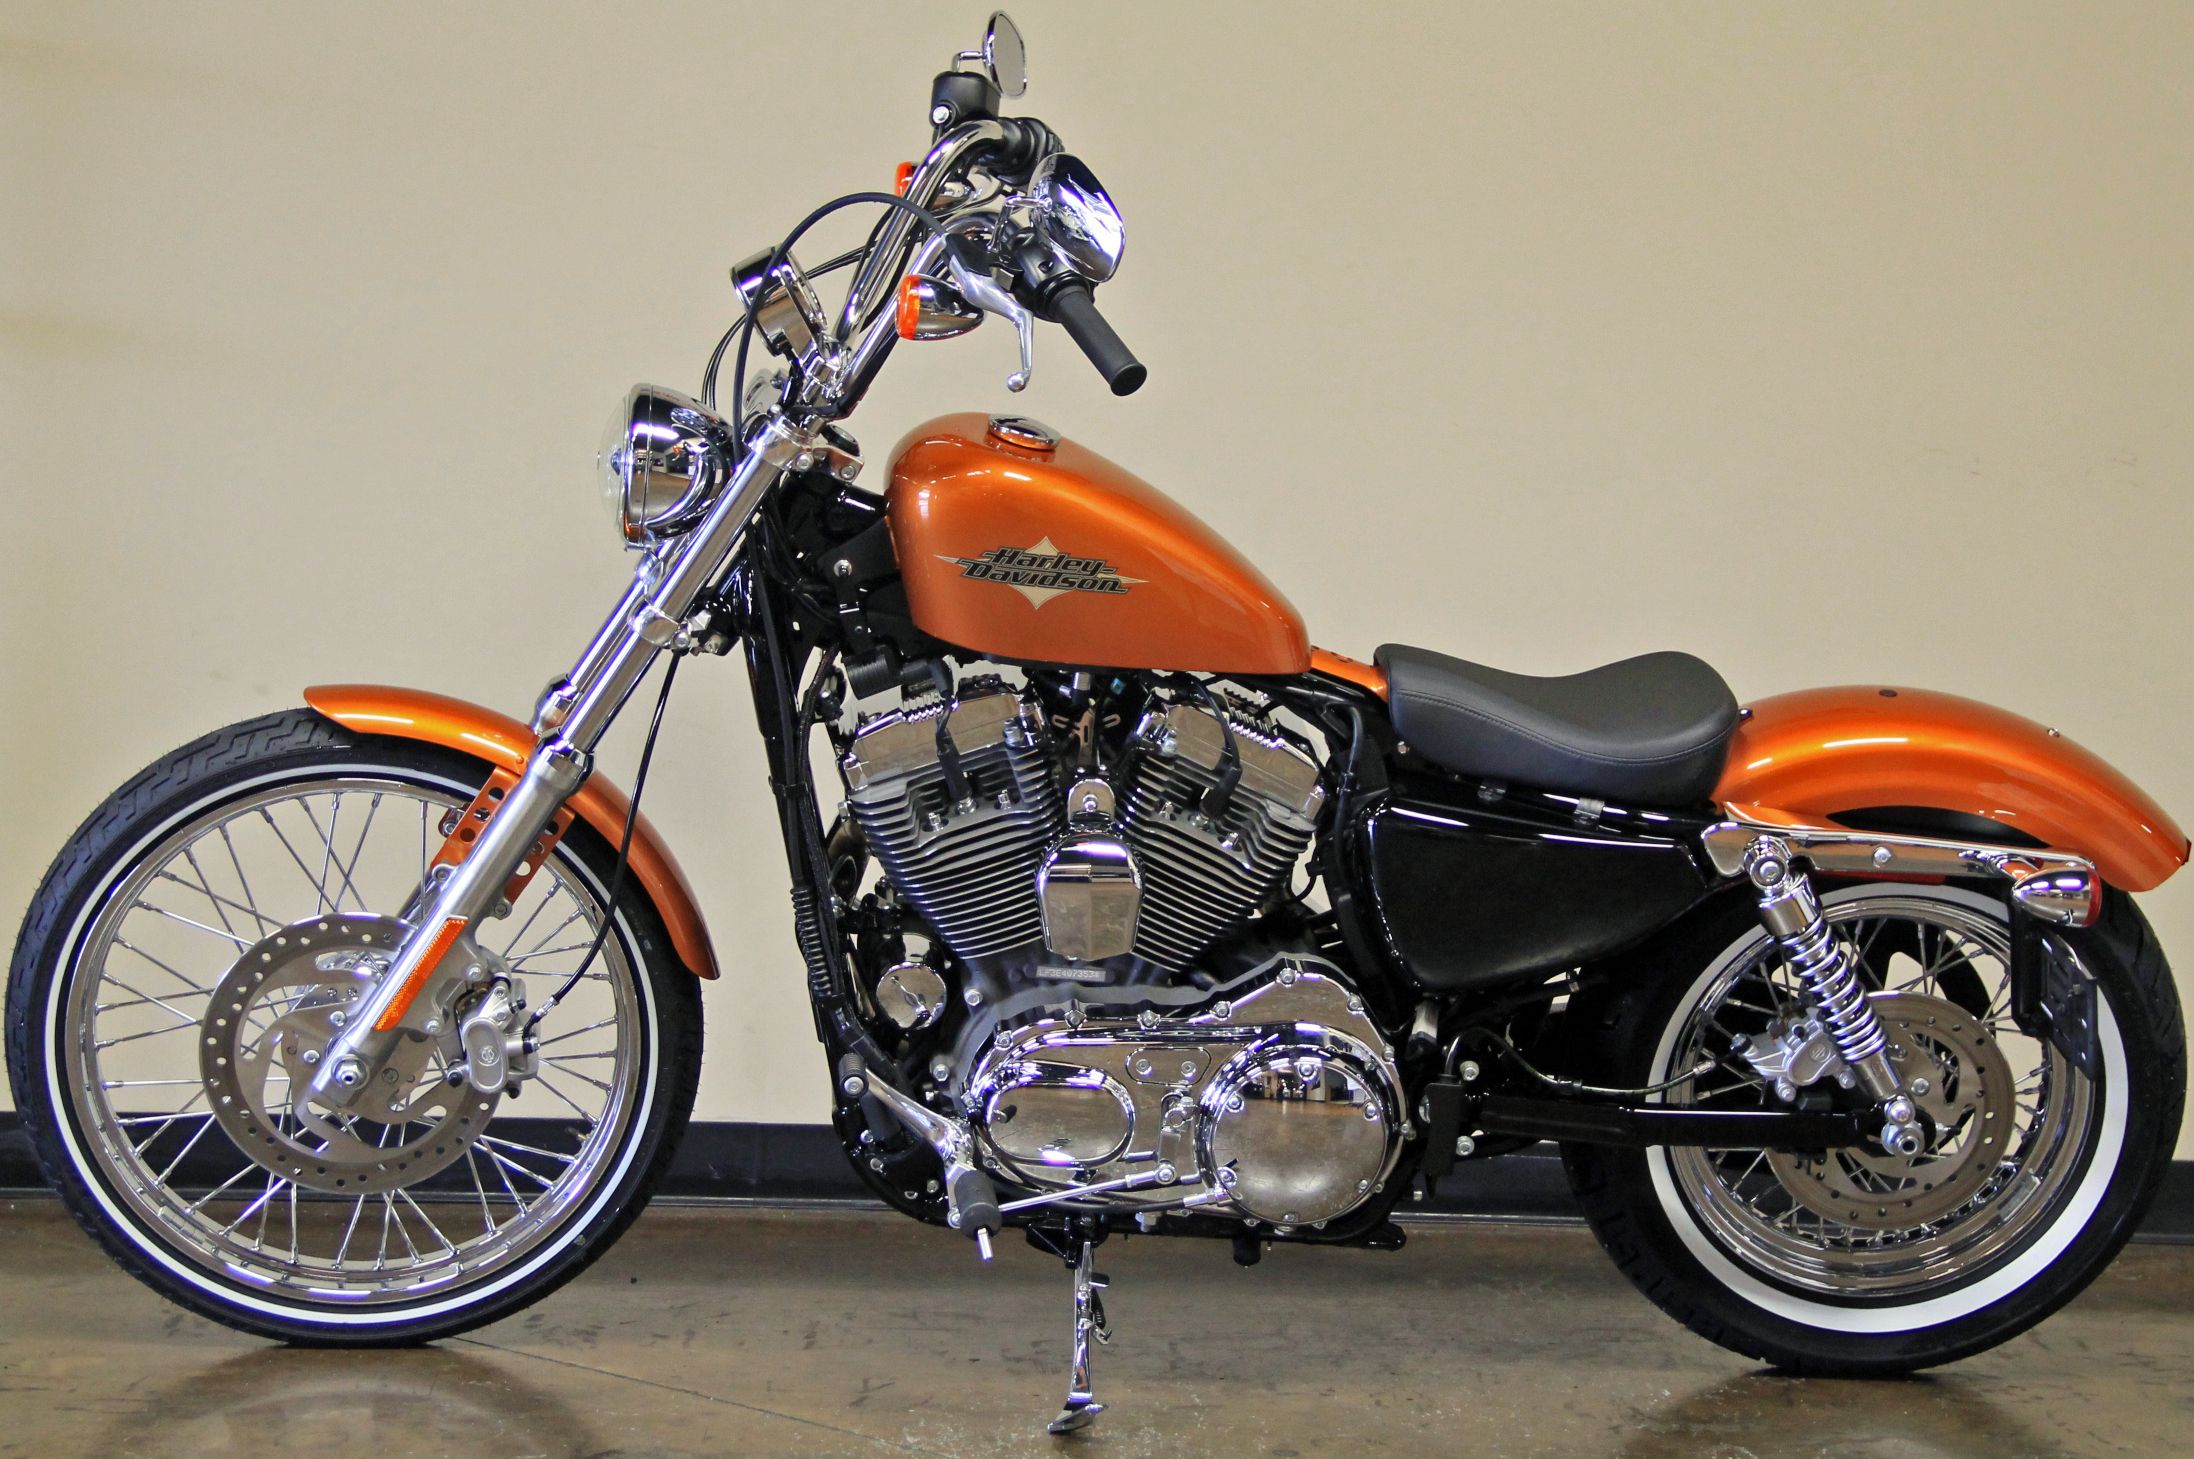 2014 harley davidson seventy two in amber whiskey i like this colour but i also love hard candy chrome flake